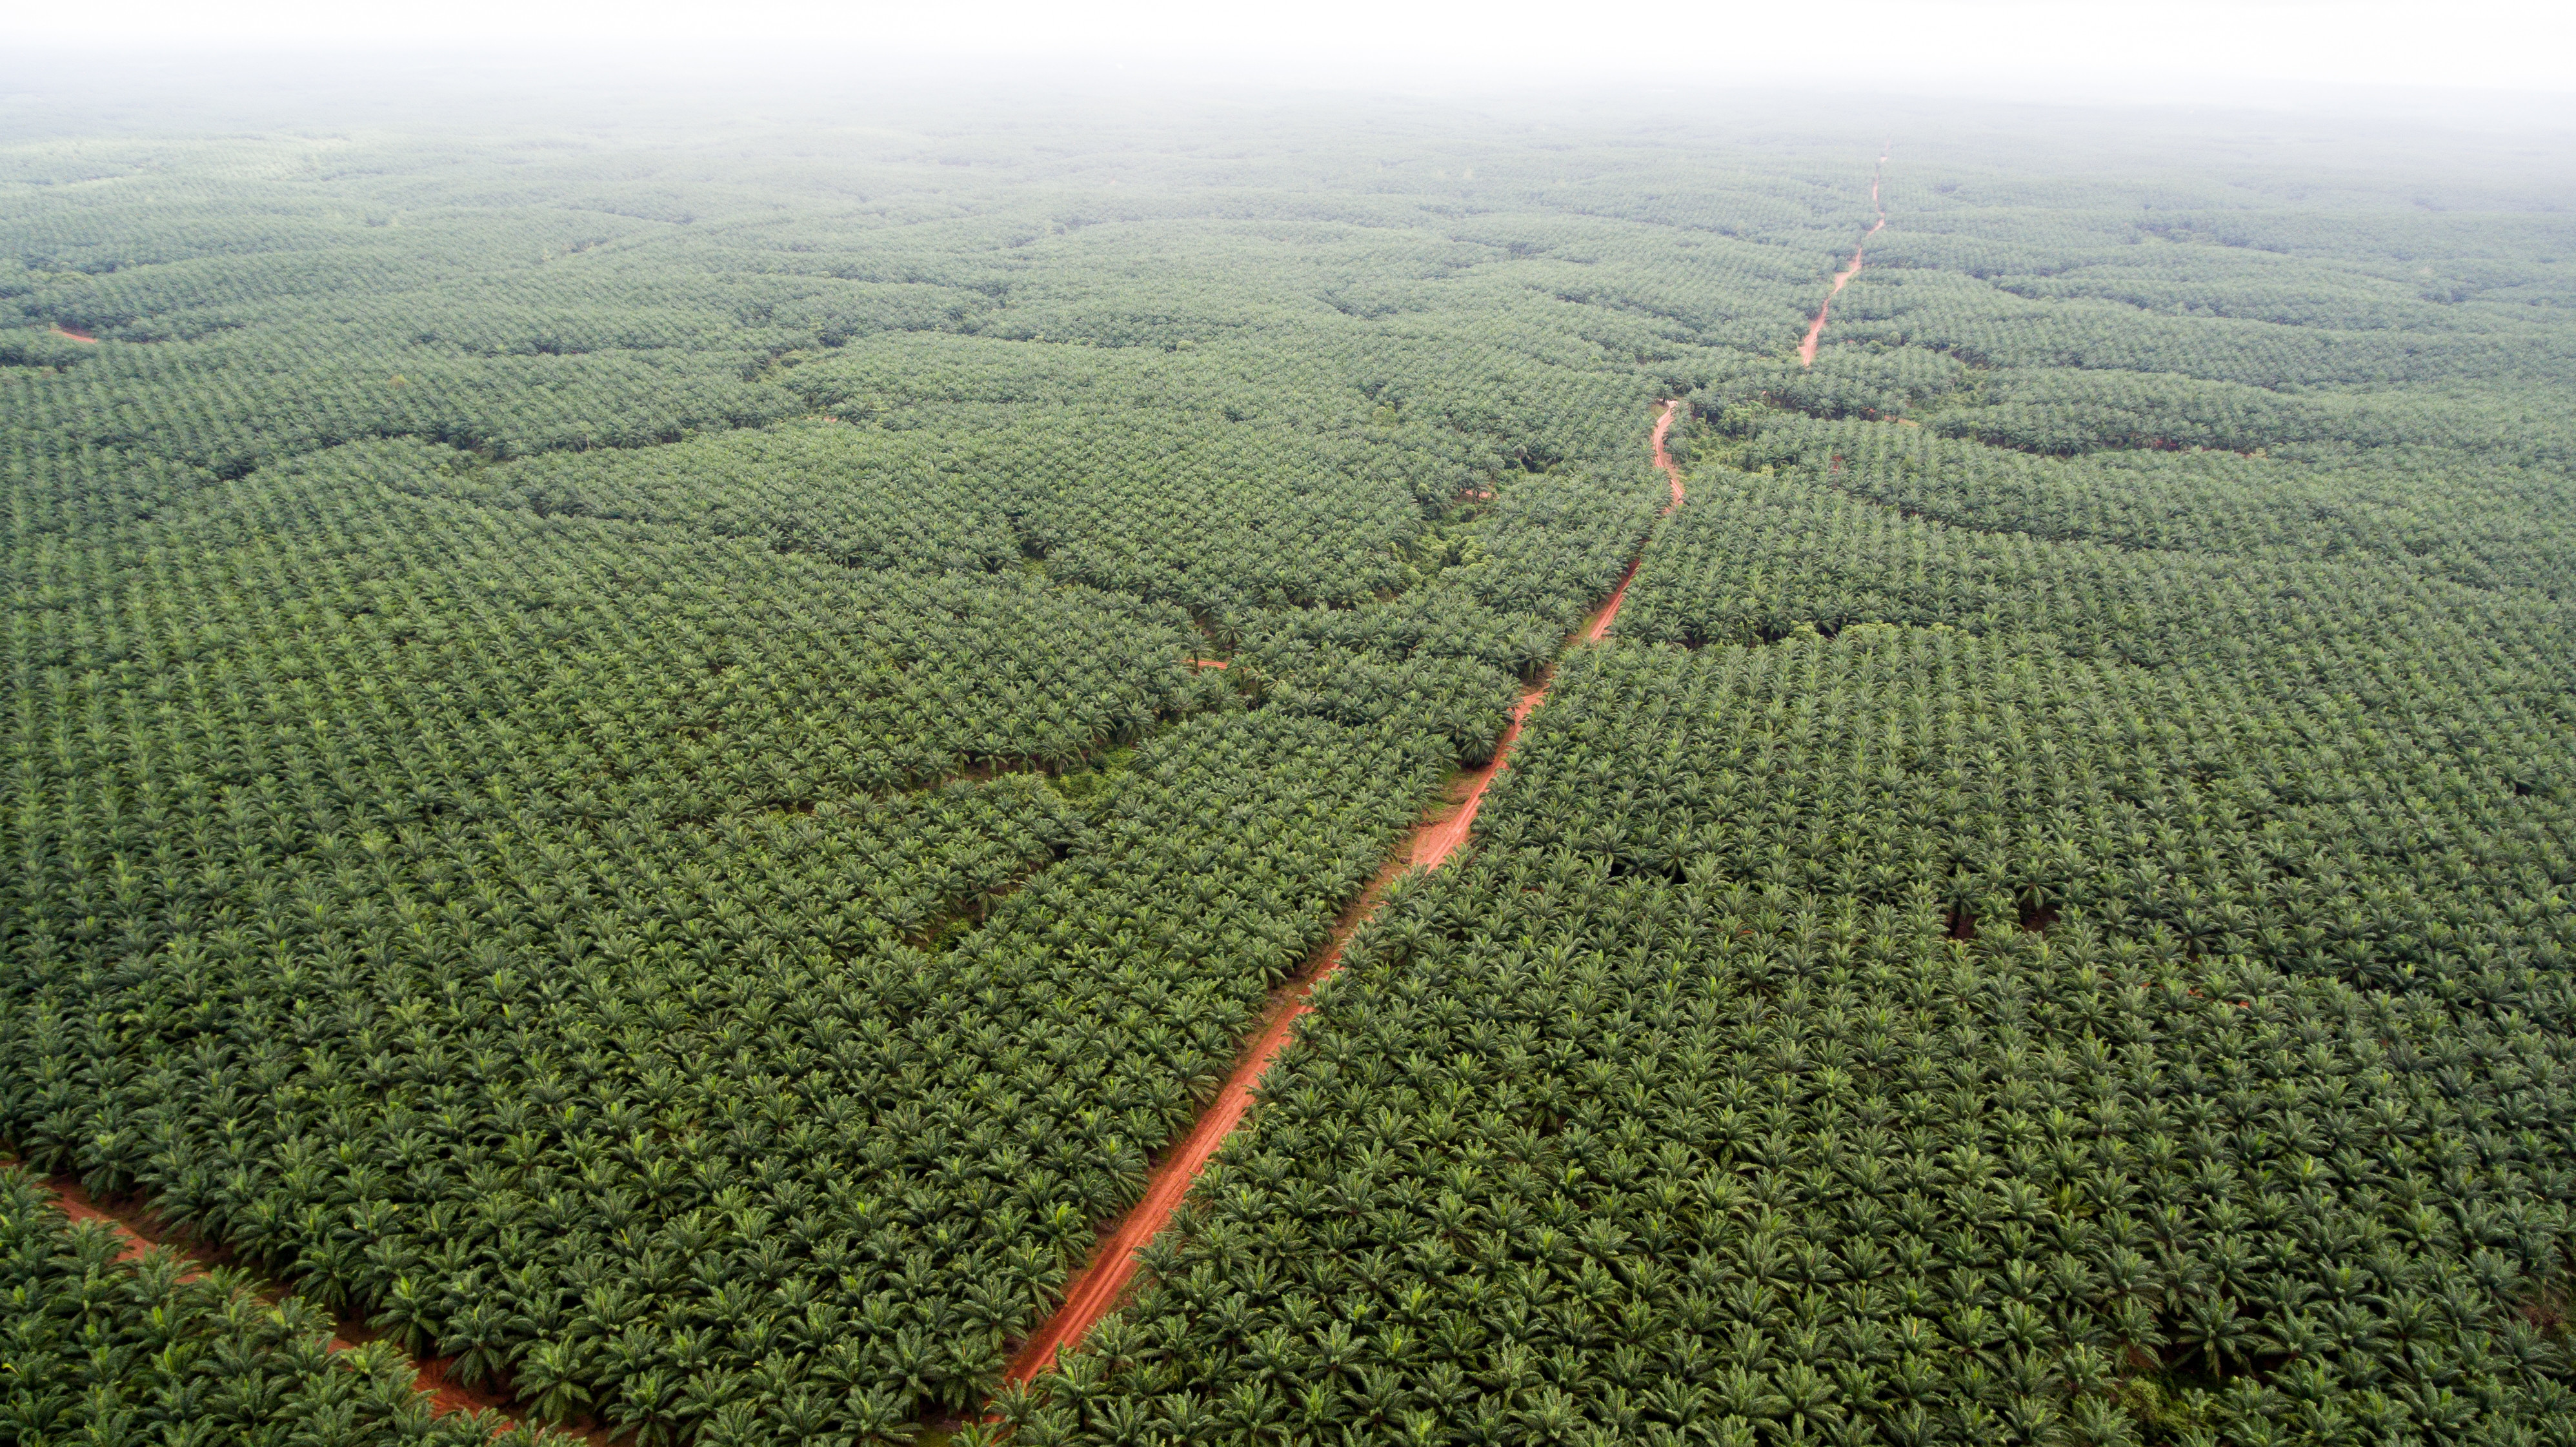 OVERLAYS OIL PALM CONCESSIONS OWNED BY PT TUNAS SAWAERMA TAKEN FROM HEIGHT